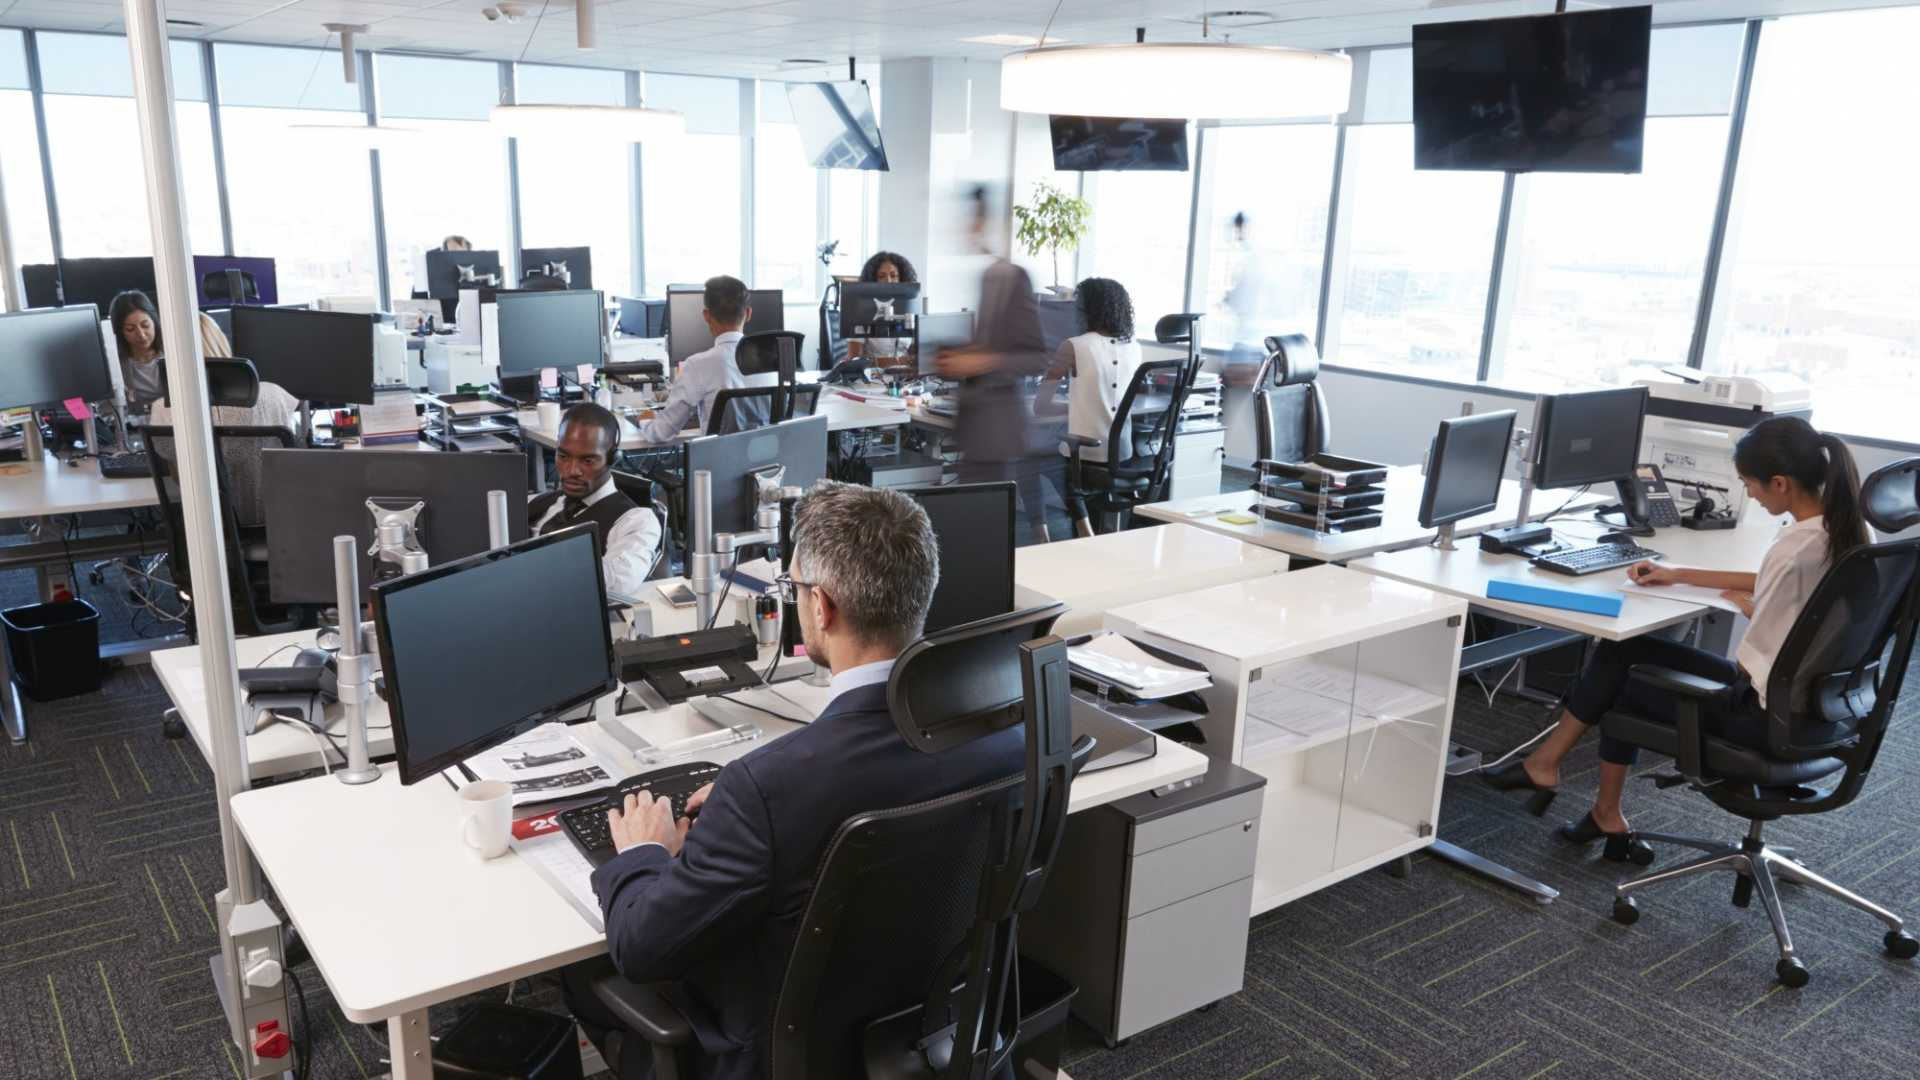 The Technology We Love In Smart Office Design Has Some Big Drawbacks. Is It Worth It?